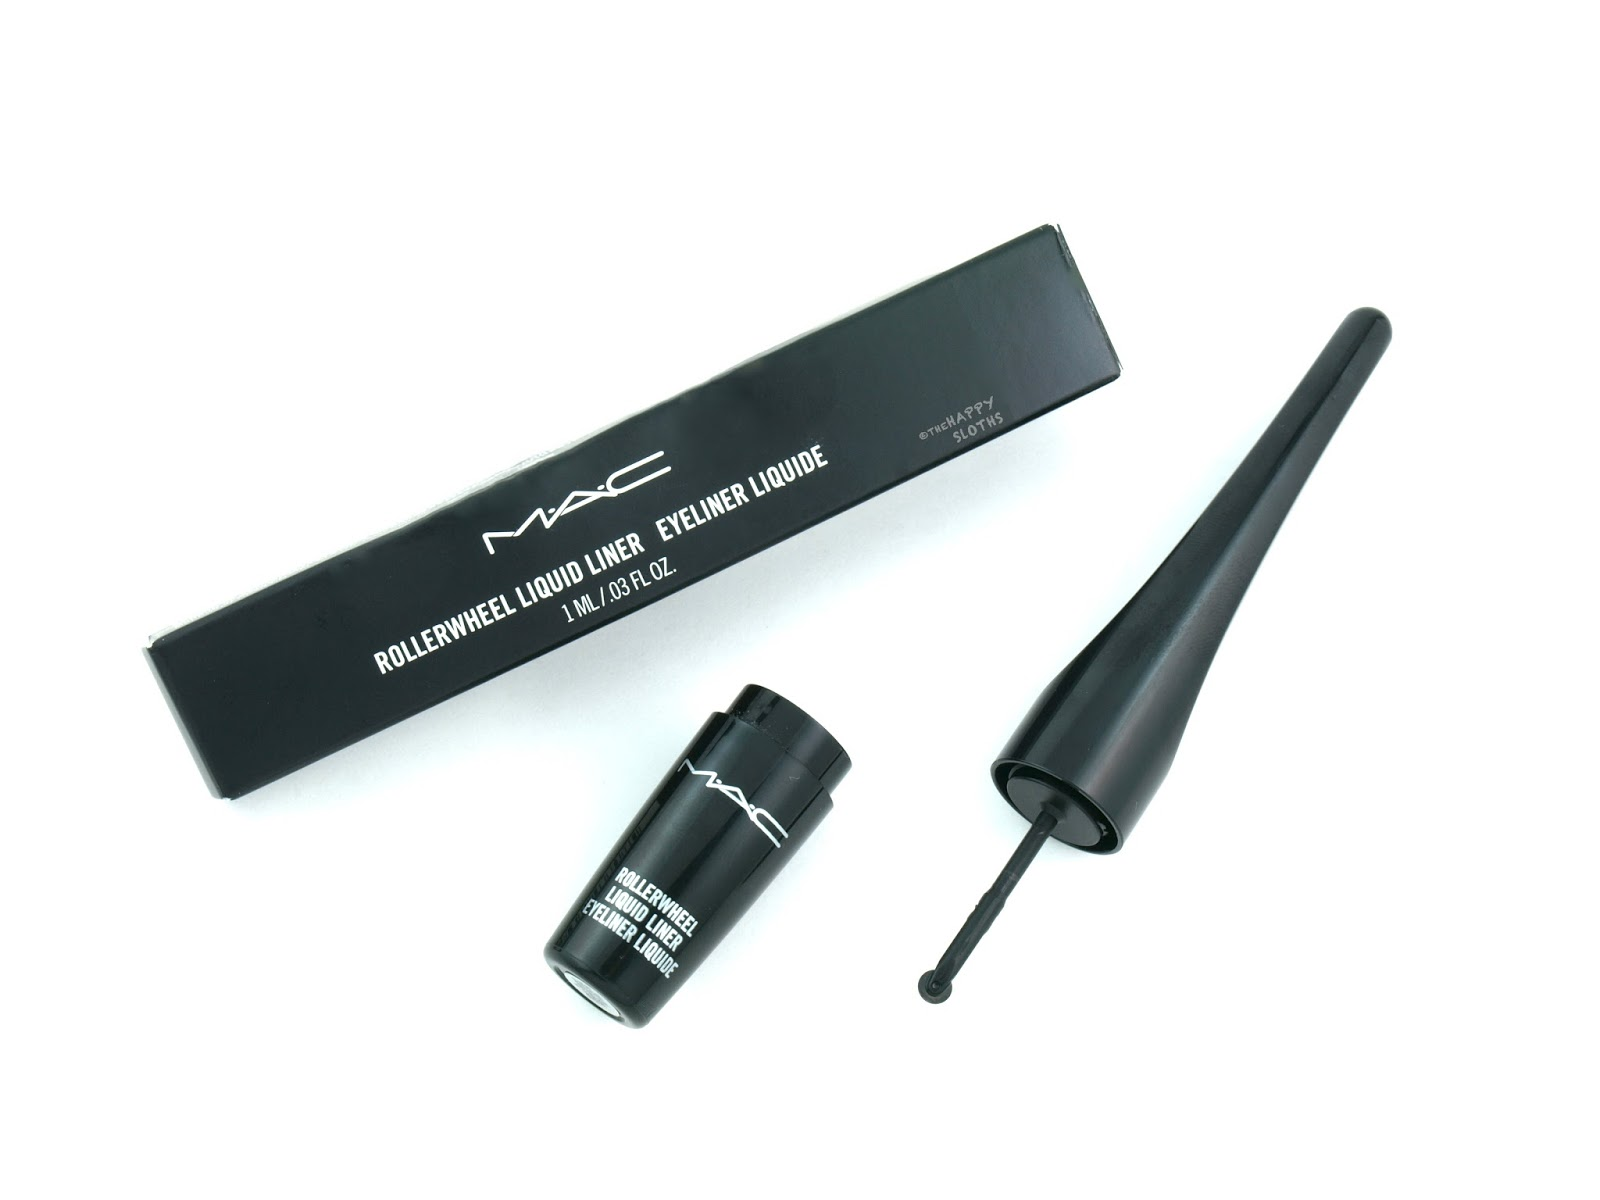 The Pizza Cutter Eyeliner | MAC Rollerwheel Liquid Liner: Review and Swatches